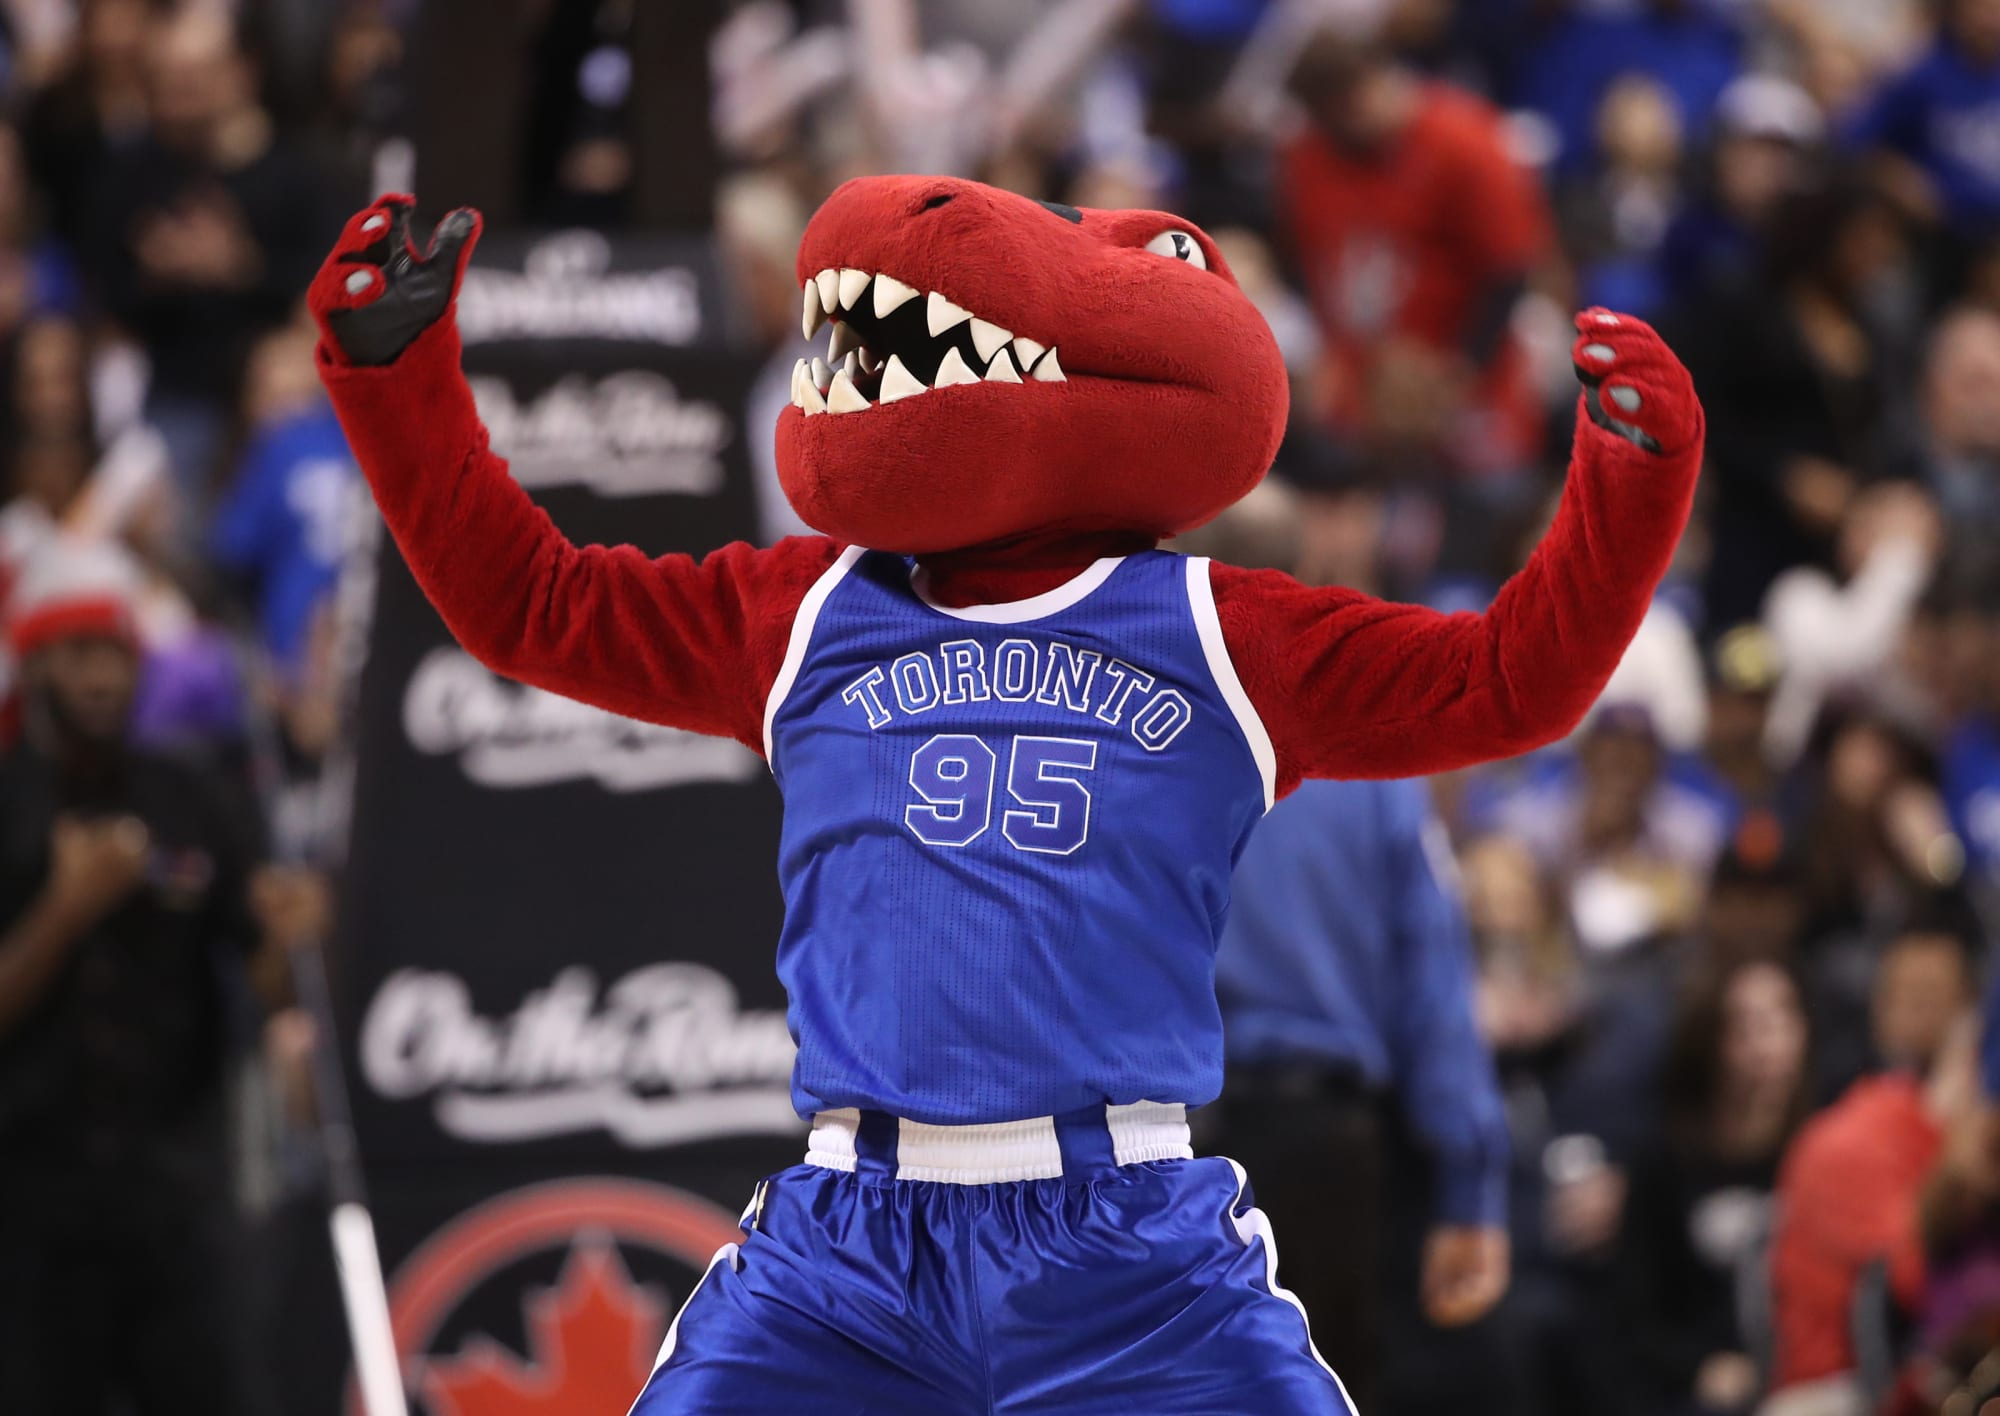 Raptors: Bringing back the Toronto Huskies jerseys for 2021 are a must